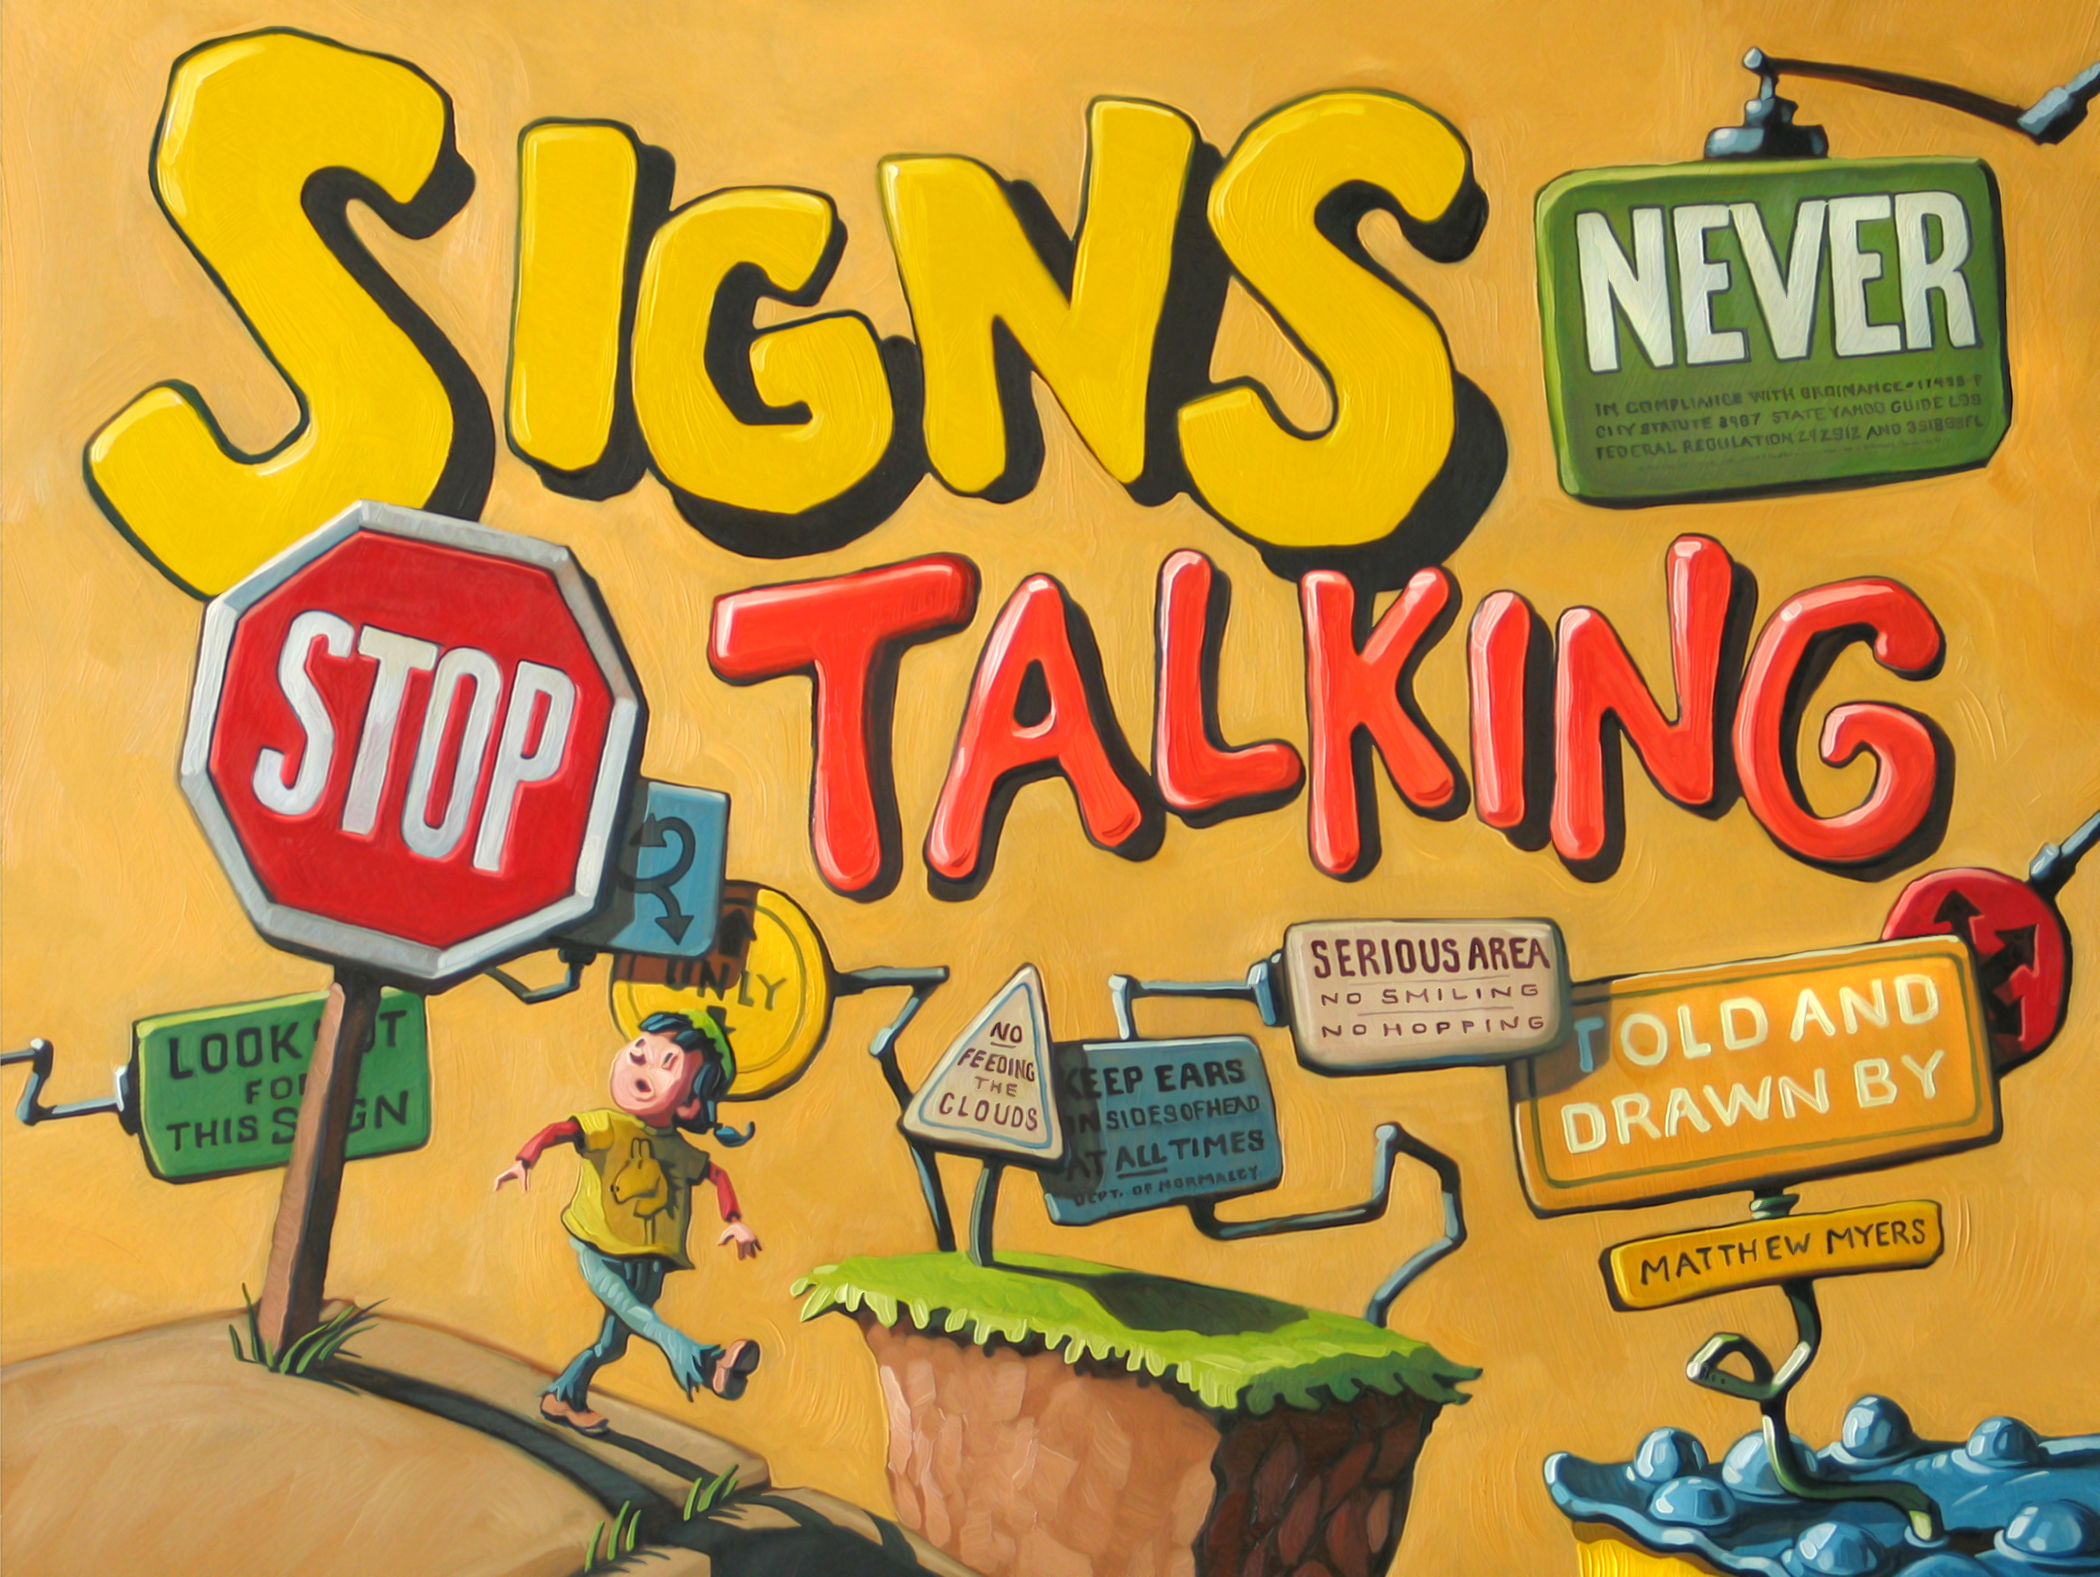 "Signs Never Stop Talking  16"" wide. Oil on wood, 2007.  $300.   Buy this painting."